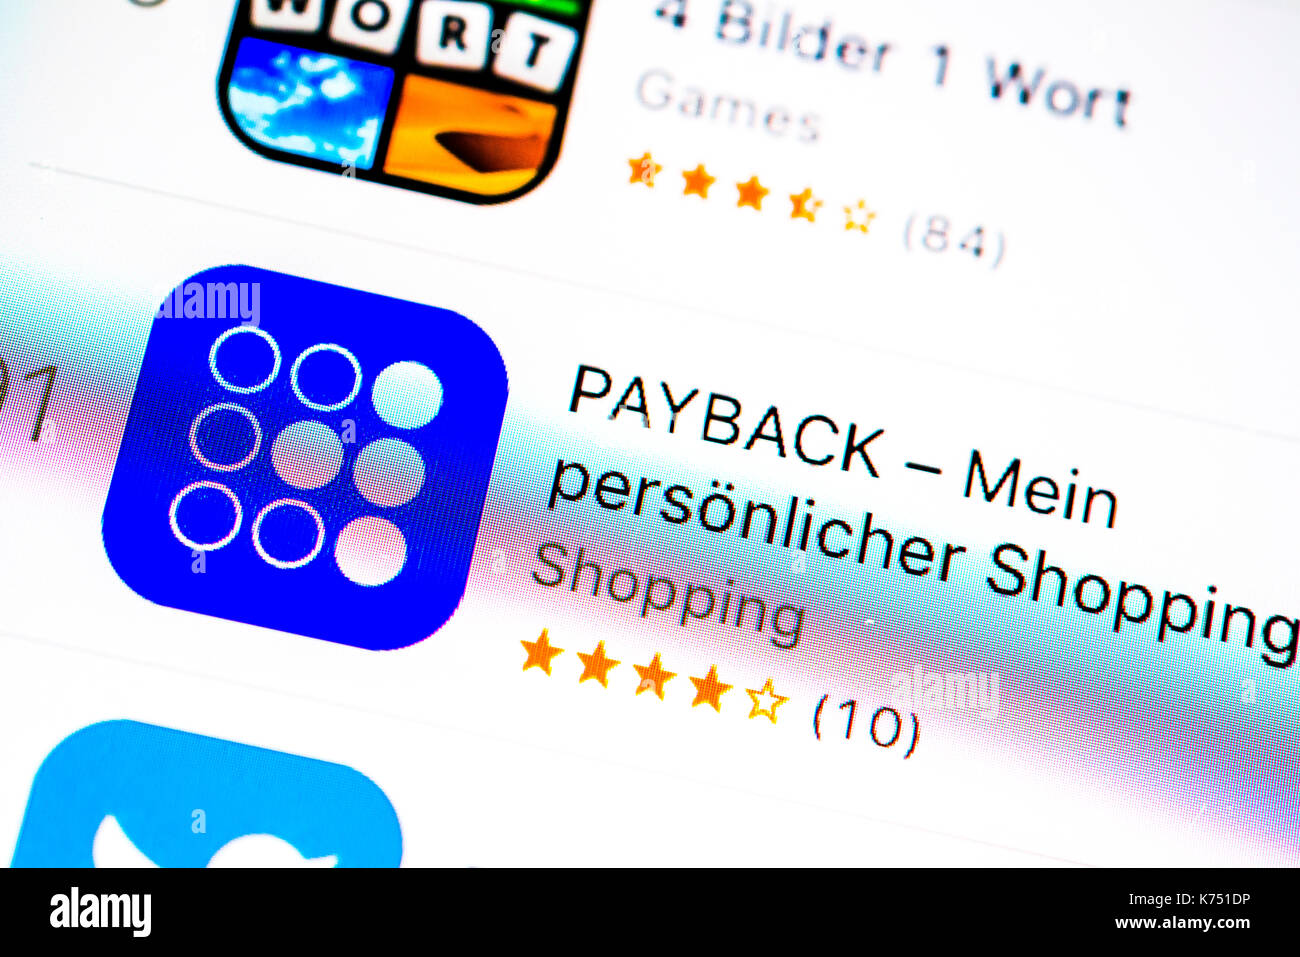 PayBack app in the Apple App Store, app icon, display on a screen of a mobile phone, iPhone, iOS, smartphone, macro recording - Stock Image